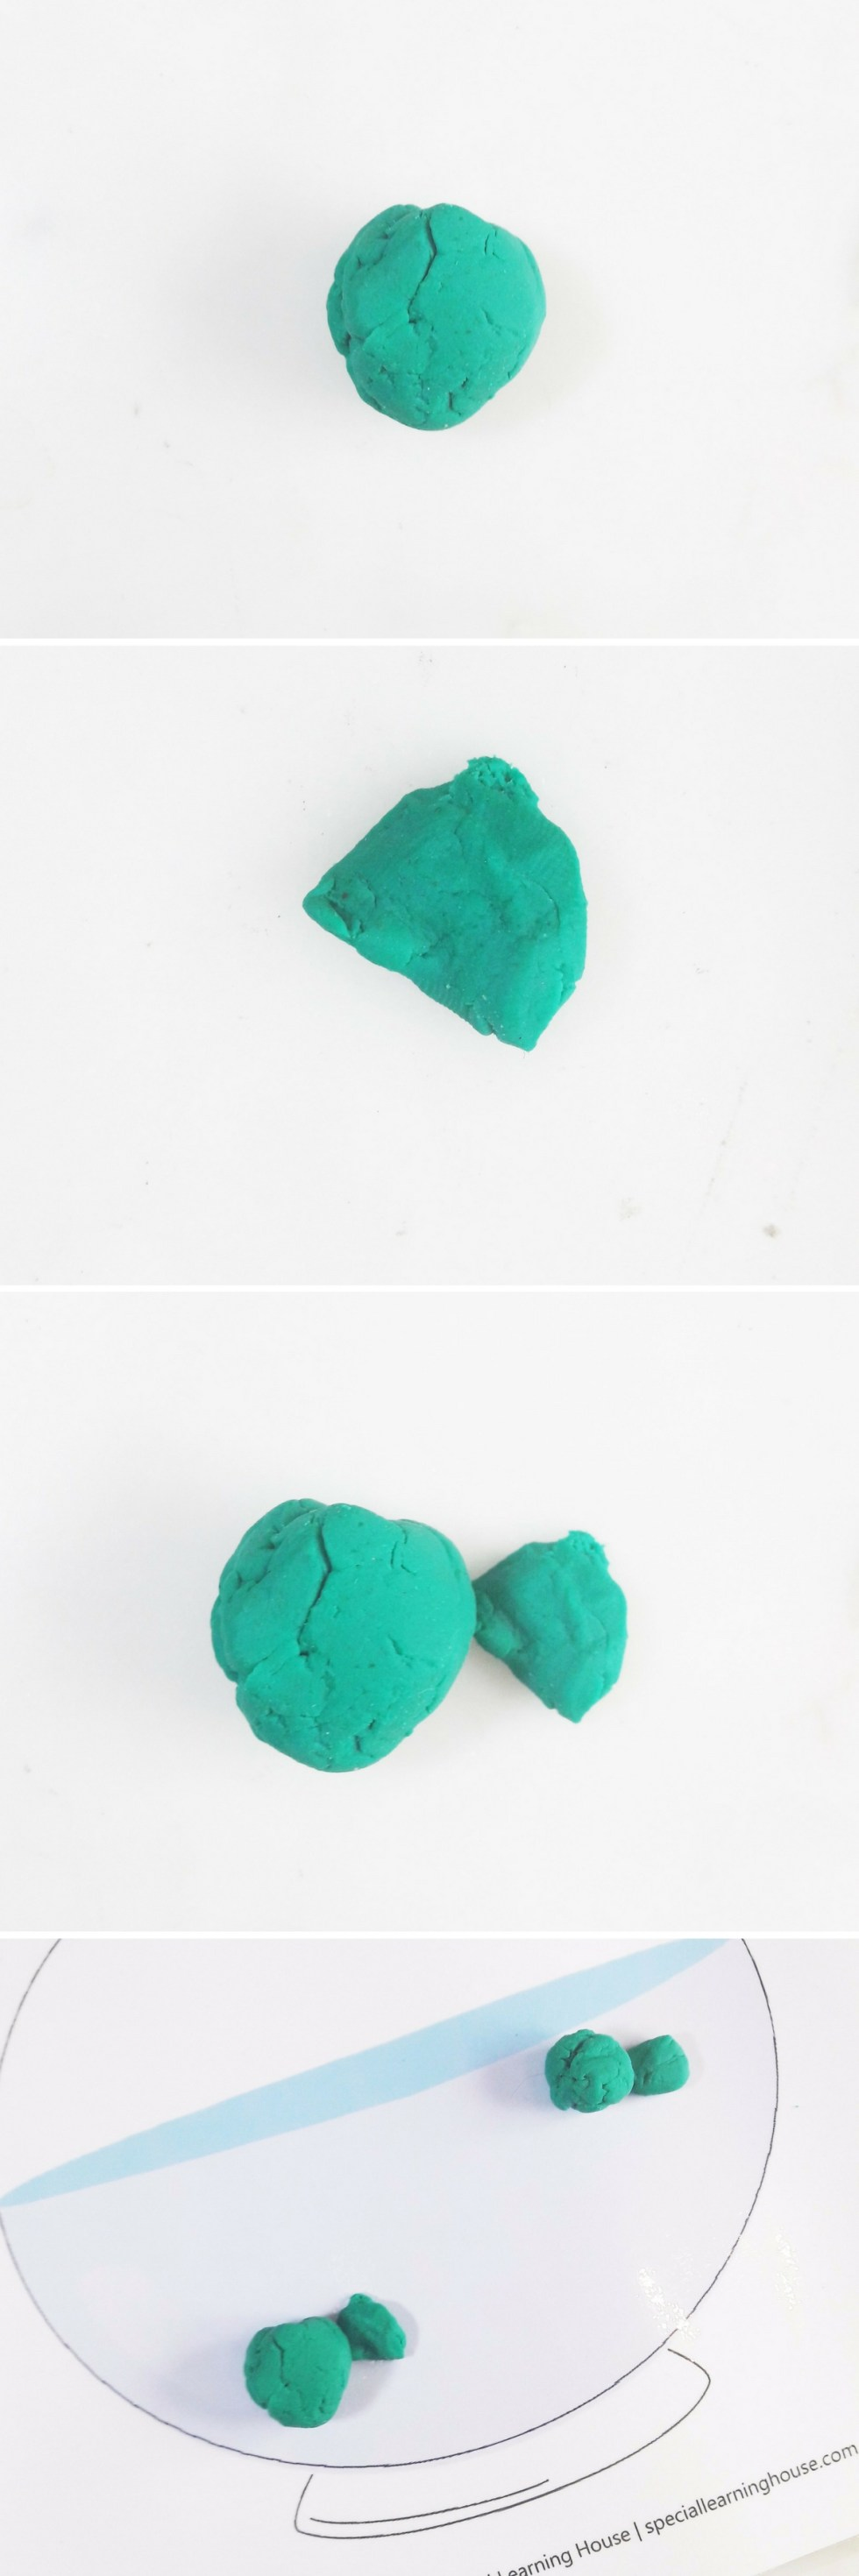 Free Printable Fish Bowl Playdough Mat.   speciallearninghouse.com